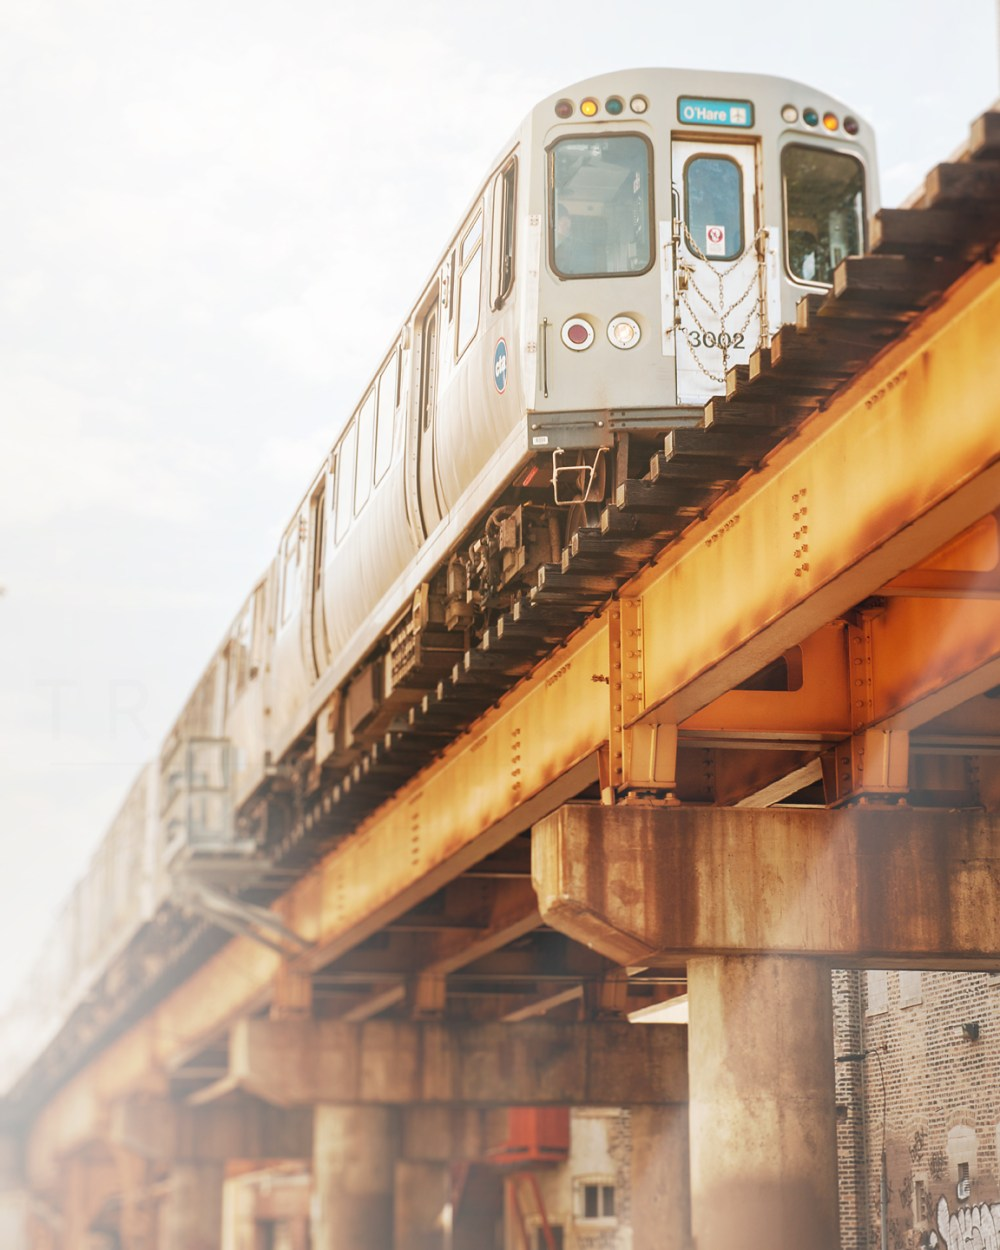 Chicago CTA Blue Line train headed towards O'Hare in the Wicker Park Neighborhood. Photograph by Tracey Capone